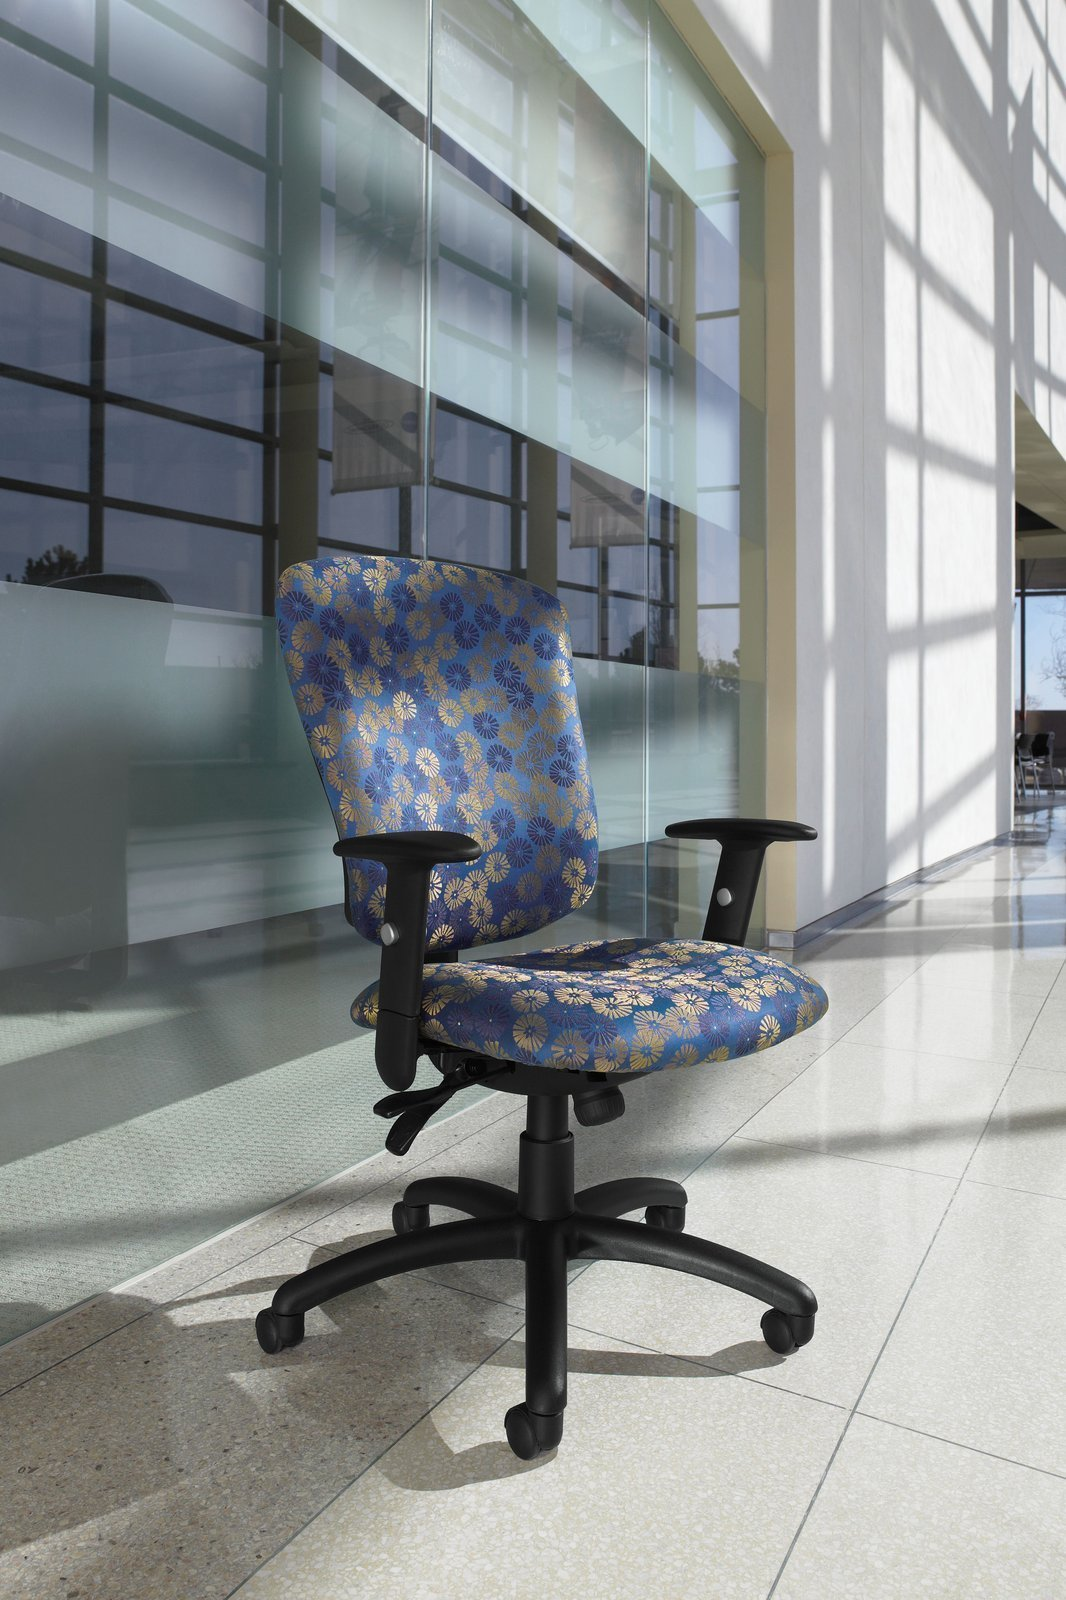 Studio shot a high backed Supra office chairs. The seat and back cushions have a blue and gold floral pattern.